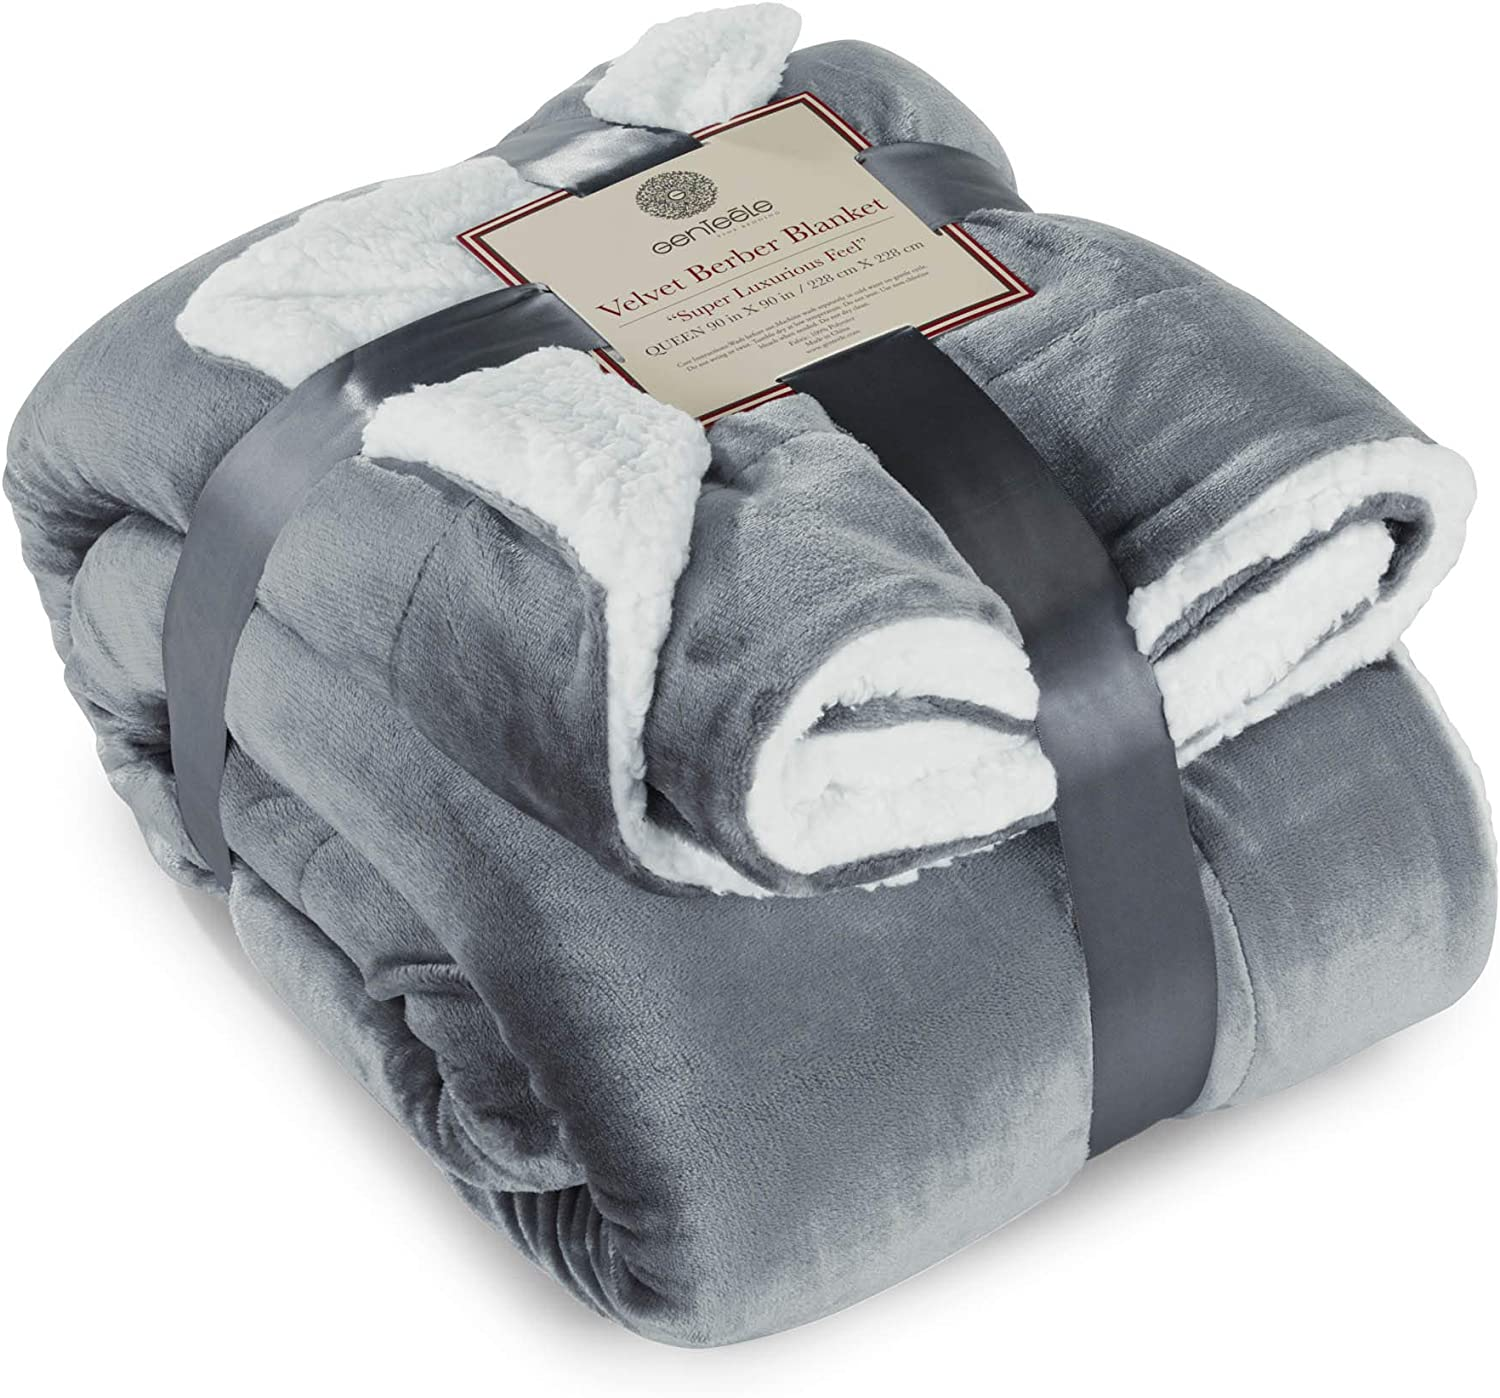 Genteele Sherpa Throw Blanket Super Soft Reversible Ultra Luxurious Plush Blanket (90 inches x 90 inches, Gray/White)